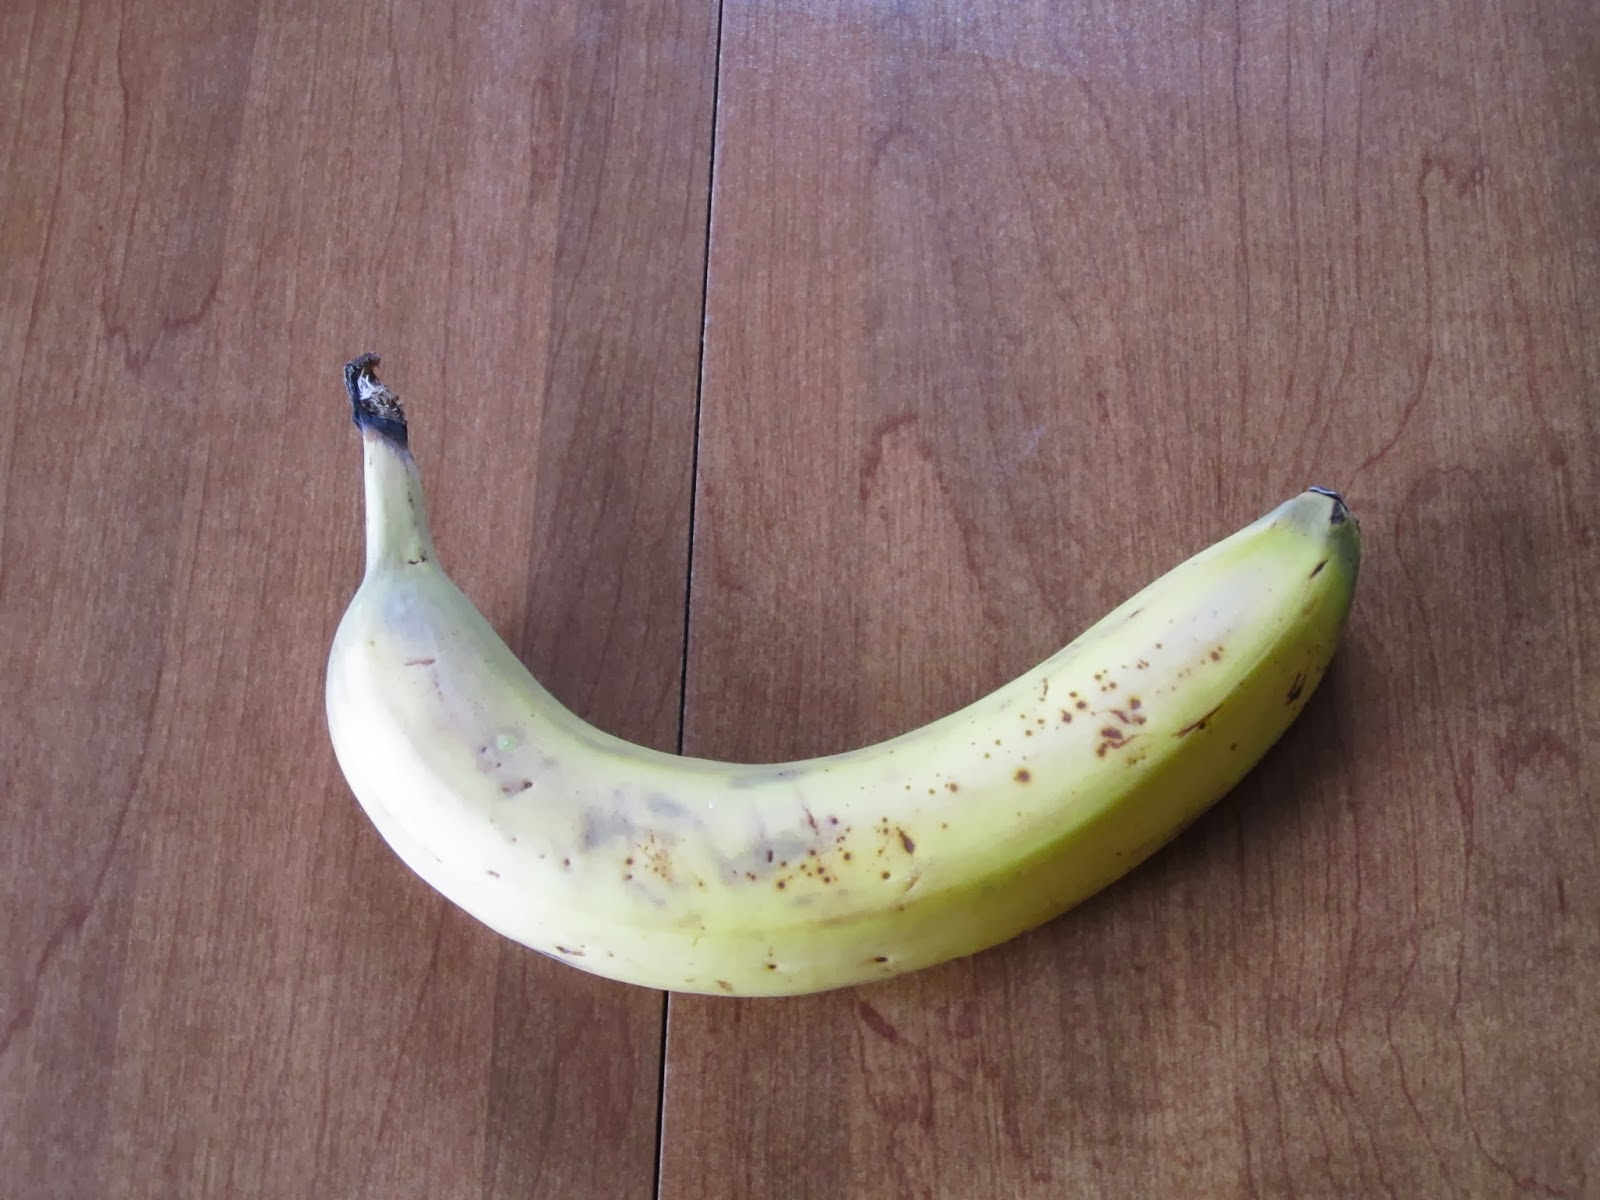 essay on bananas The word banana mens musa paradisca which means fruit of the wise men the banana is said to have orighinbatd in malaysia or indonesia the banana spread like the black plauge.